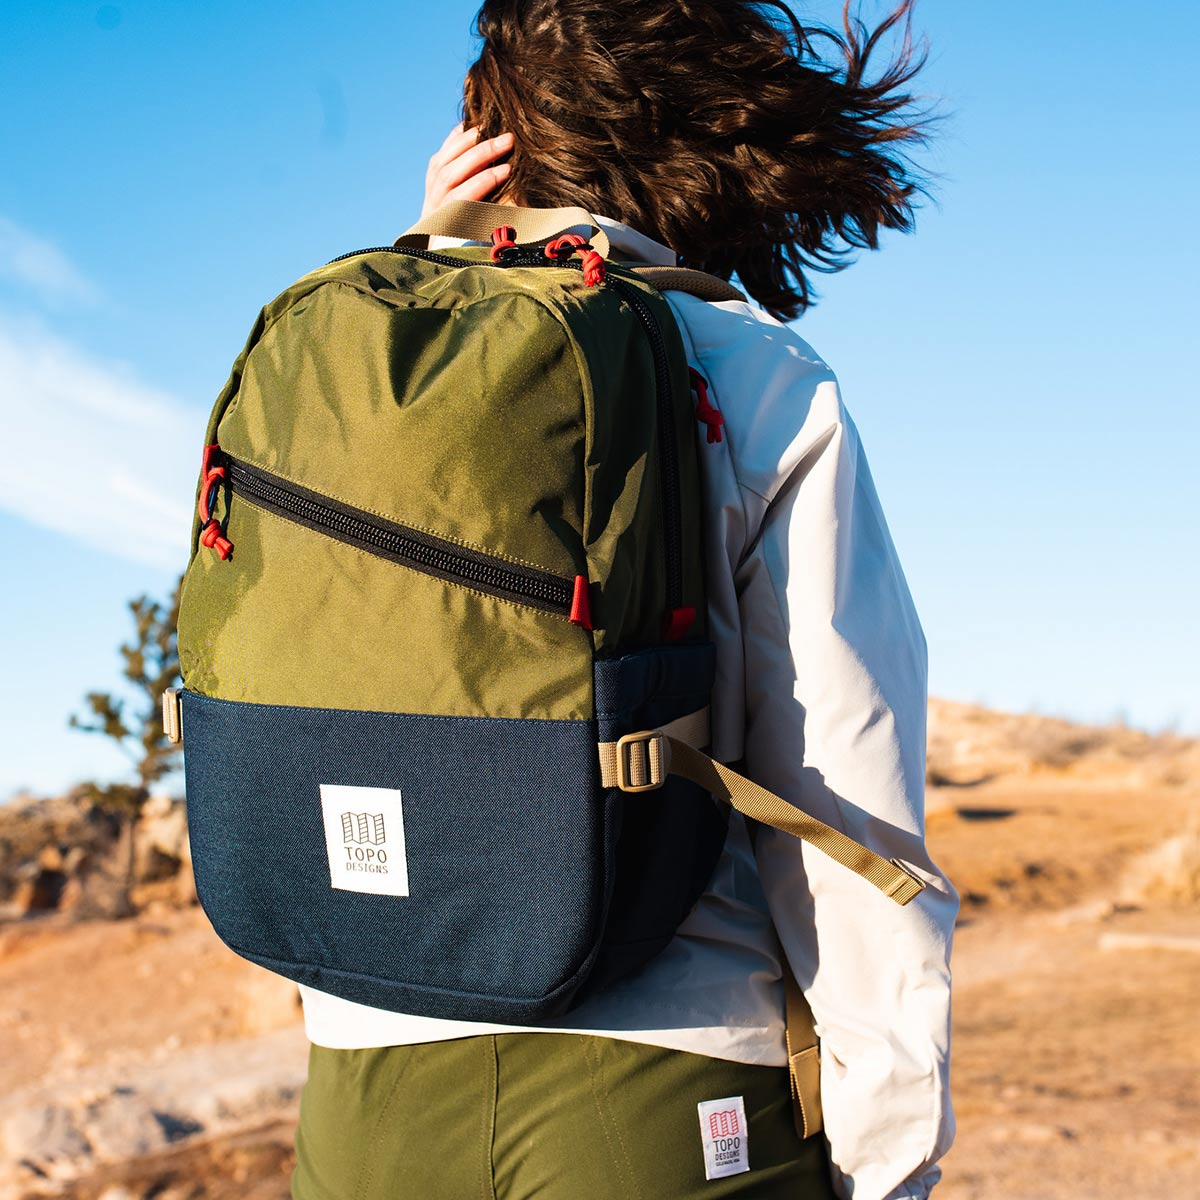 Topo Designs Standard backpack Olive/Navy, classic backpack in durable 1000D nylon